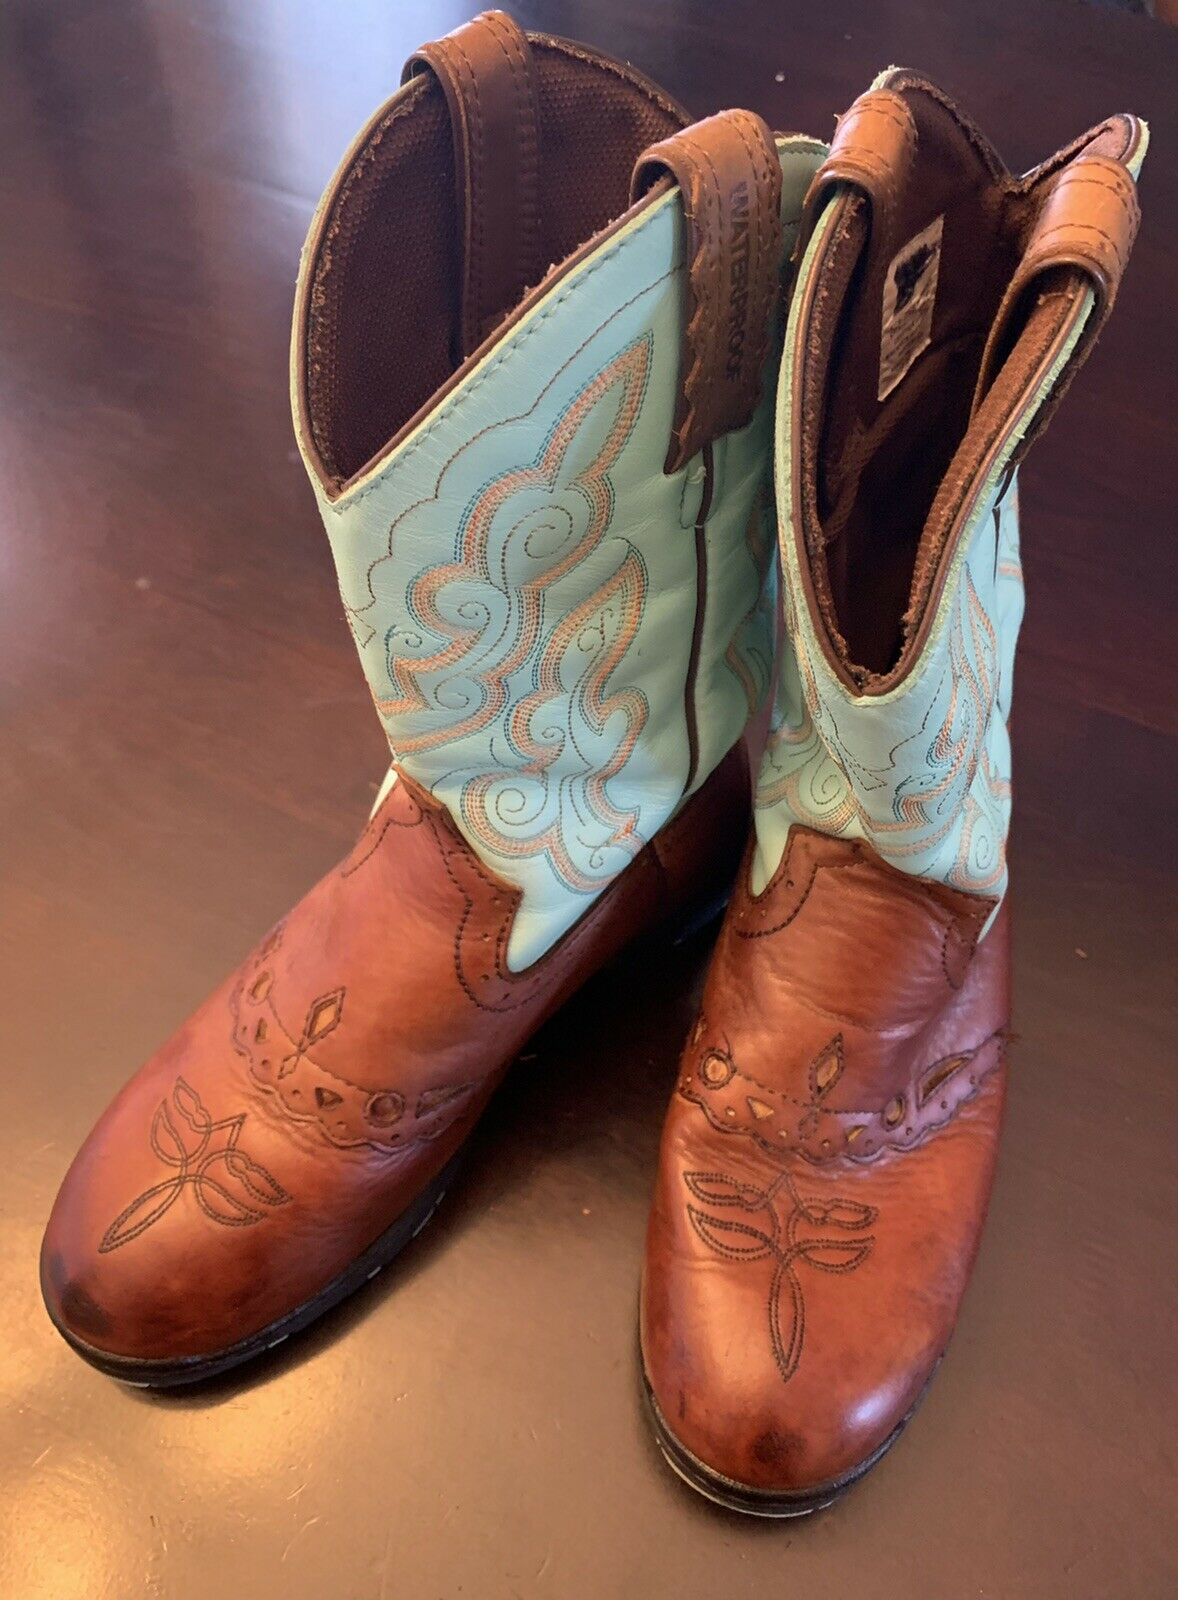 Justin Gypsy Cowboy Boots 7.5W Teal Brown Leather Short Western Hippie #19034